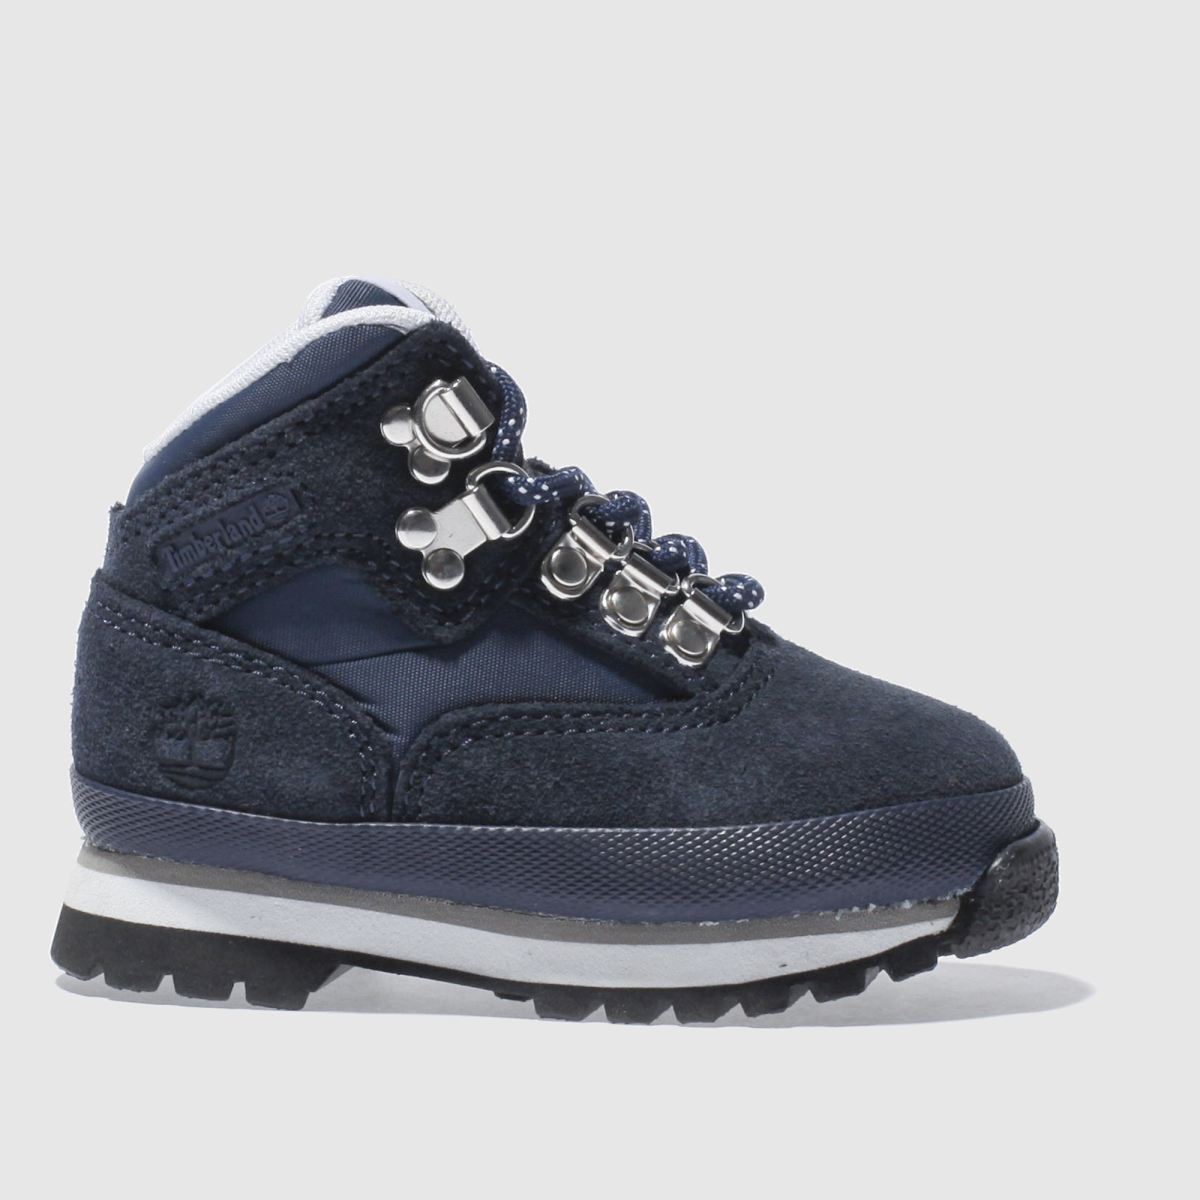 timberland navy & white euro hiker Boys Toddler Boots